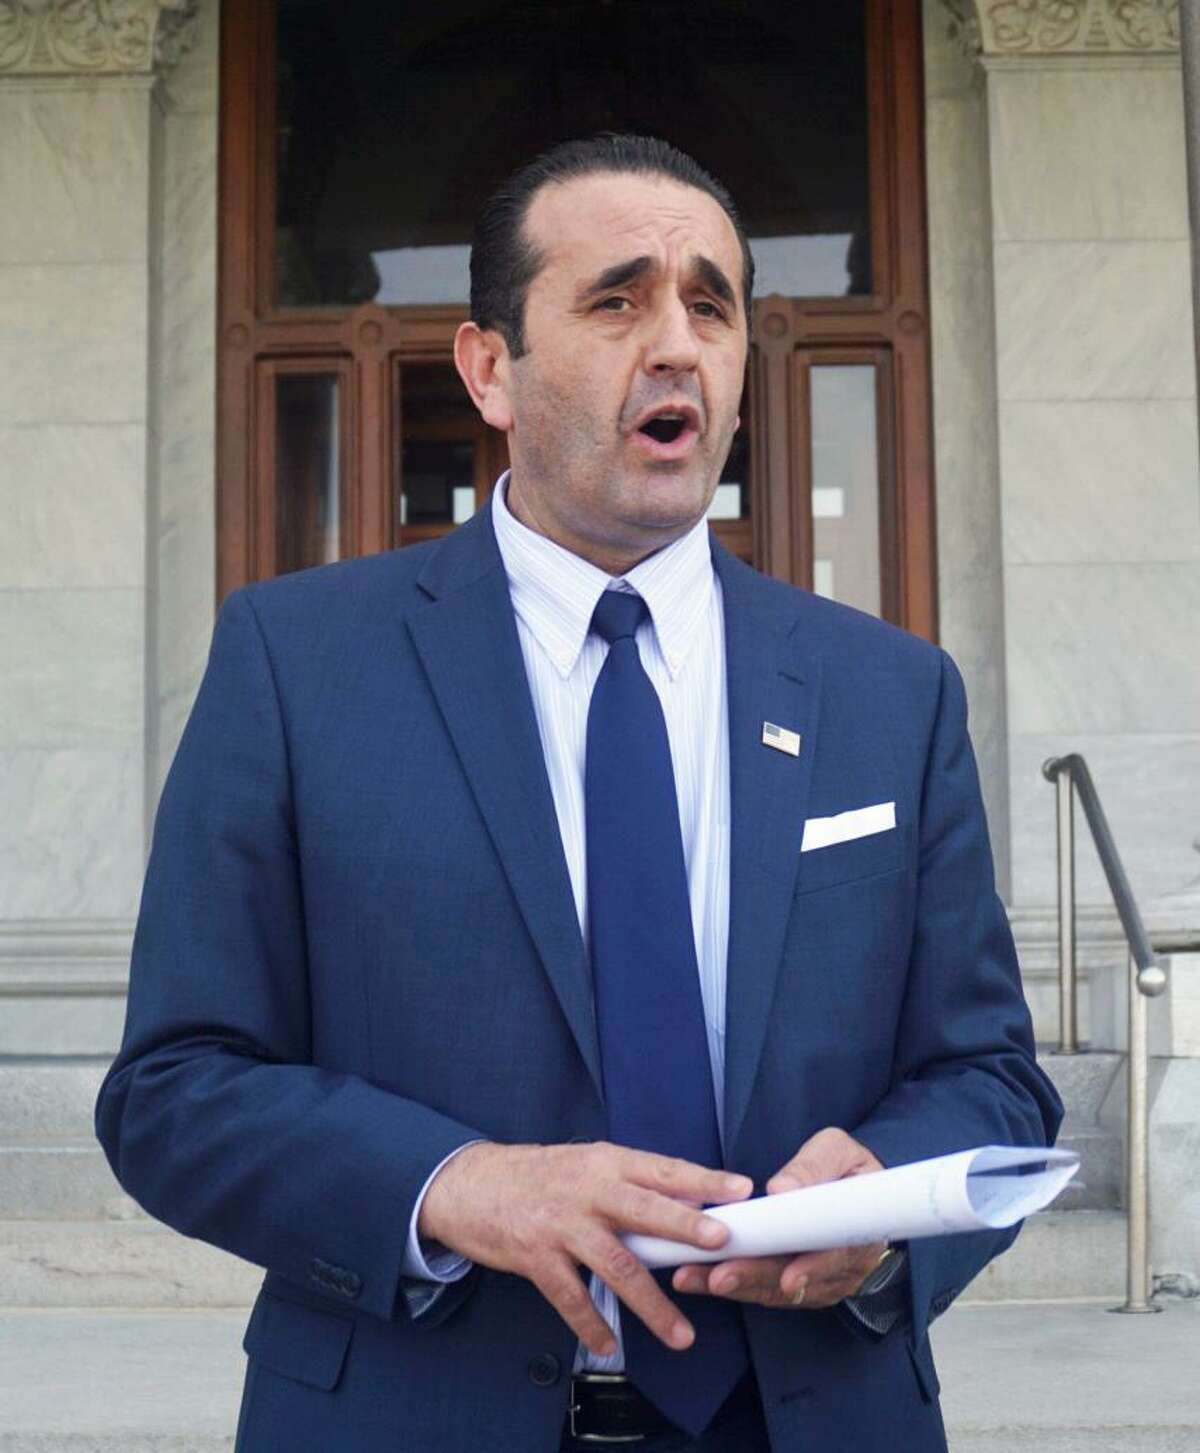 Republican gubernatorial candidate Peter Lumaj of Fairfield spoke to reporters at the Capitol in Hartford, Conn. on Wednesday May 2, 2018 because he believes he is the victim of a smear campaign by Hearst Connecticut Media. Hearst published a story Sunday factchecking various exaggerations Lumaj has made on the campaign trail.